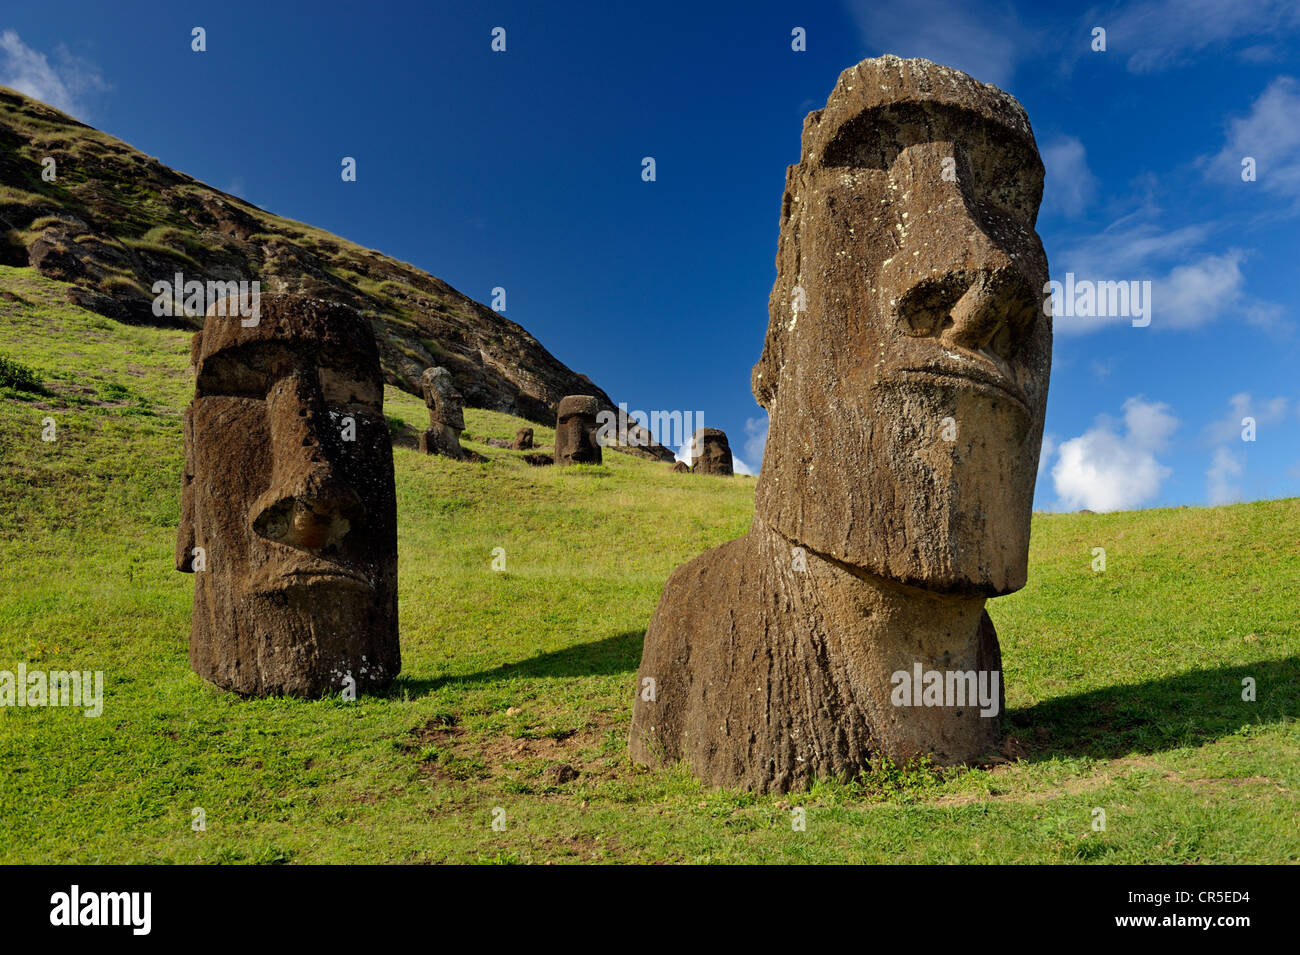 Sculptured stone statues, unfinished moai at Rano Raraku, the volcano from where the moai were hewn out of volcanic - Stock Image